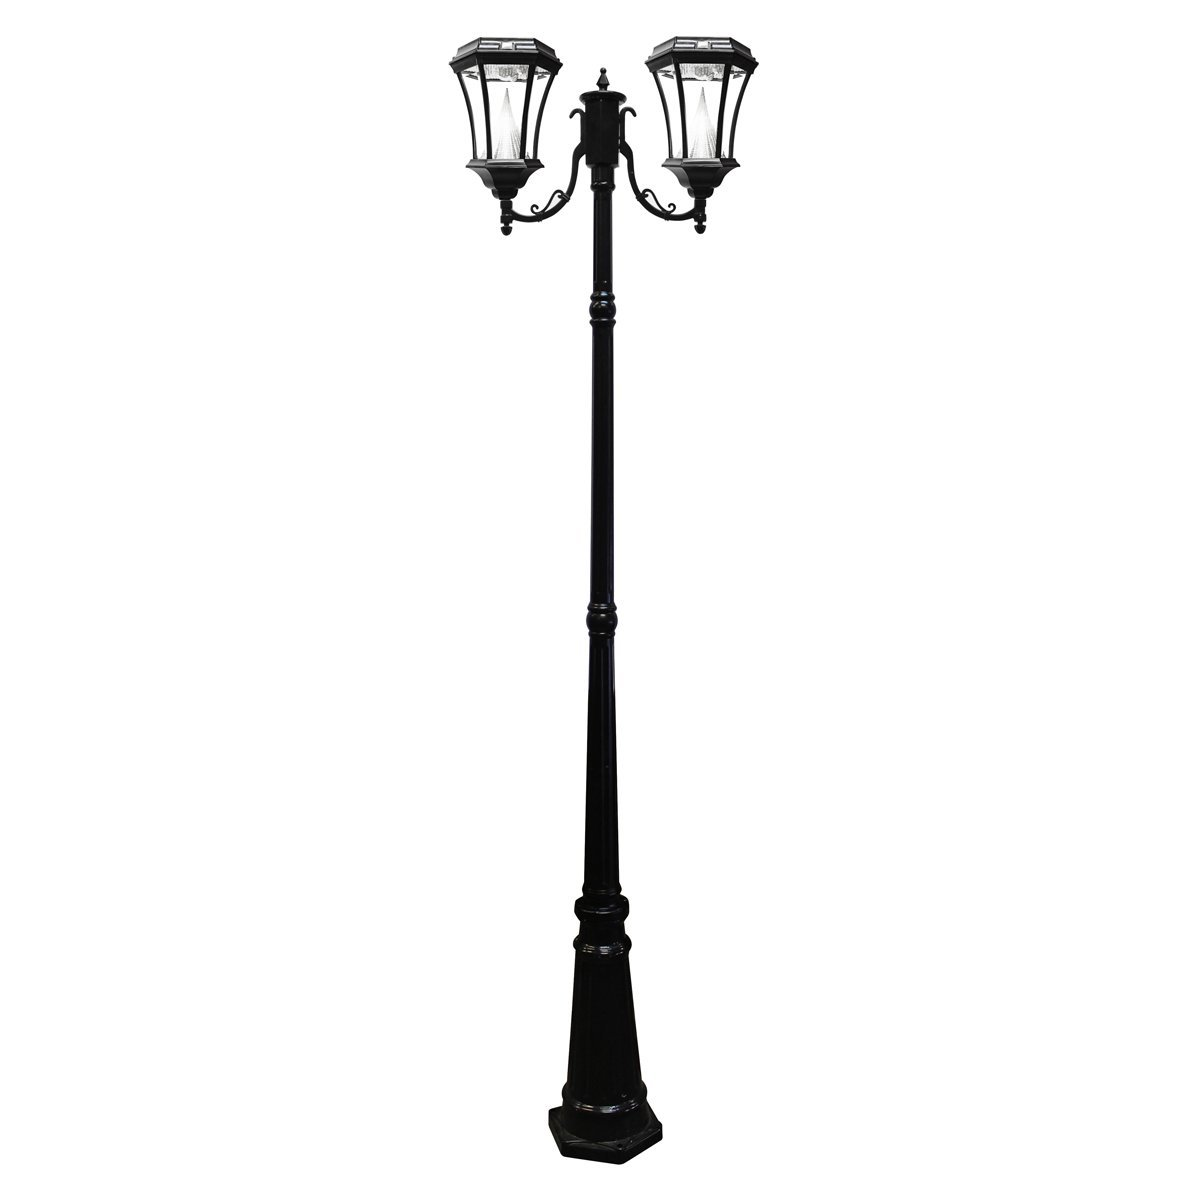 Gama Sonic Victorian Solar Lamp Post and Double Lamp LED Light Fixture, 90-Inch Height, Black Finish #GS-94D-B